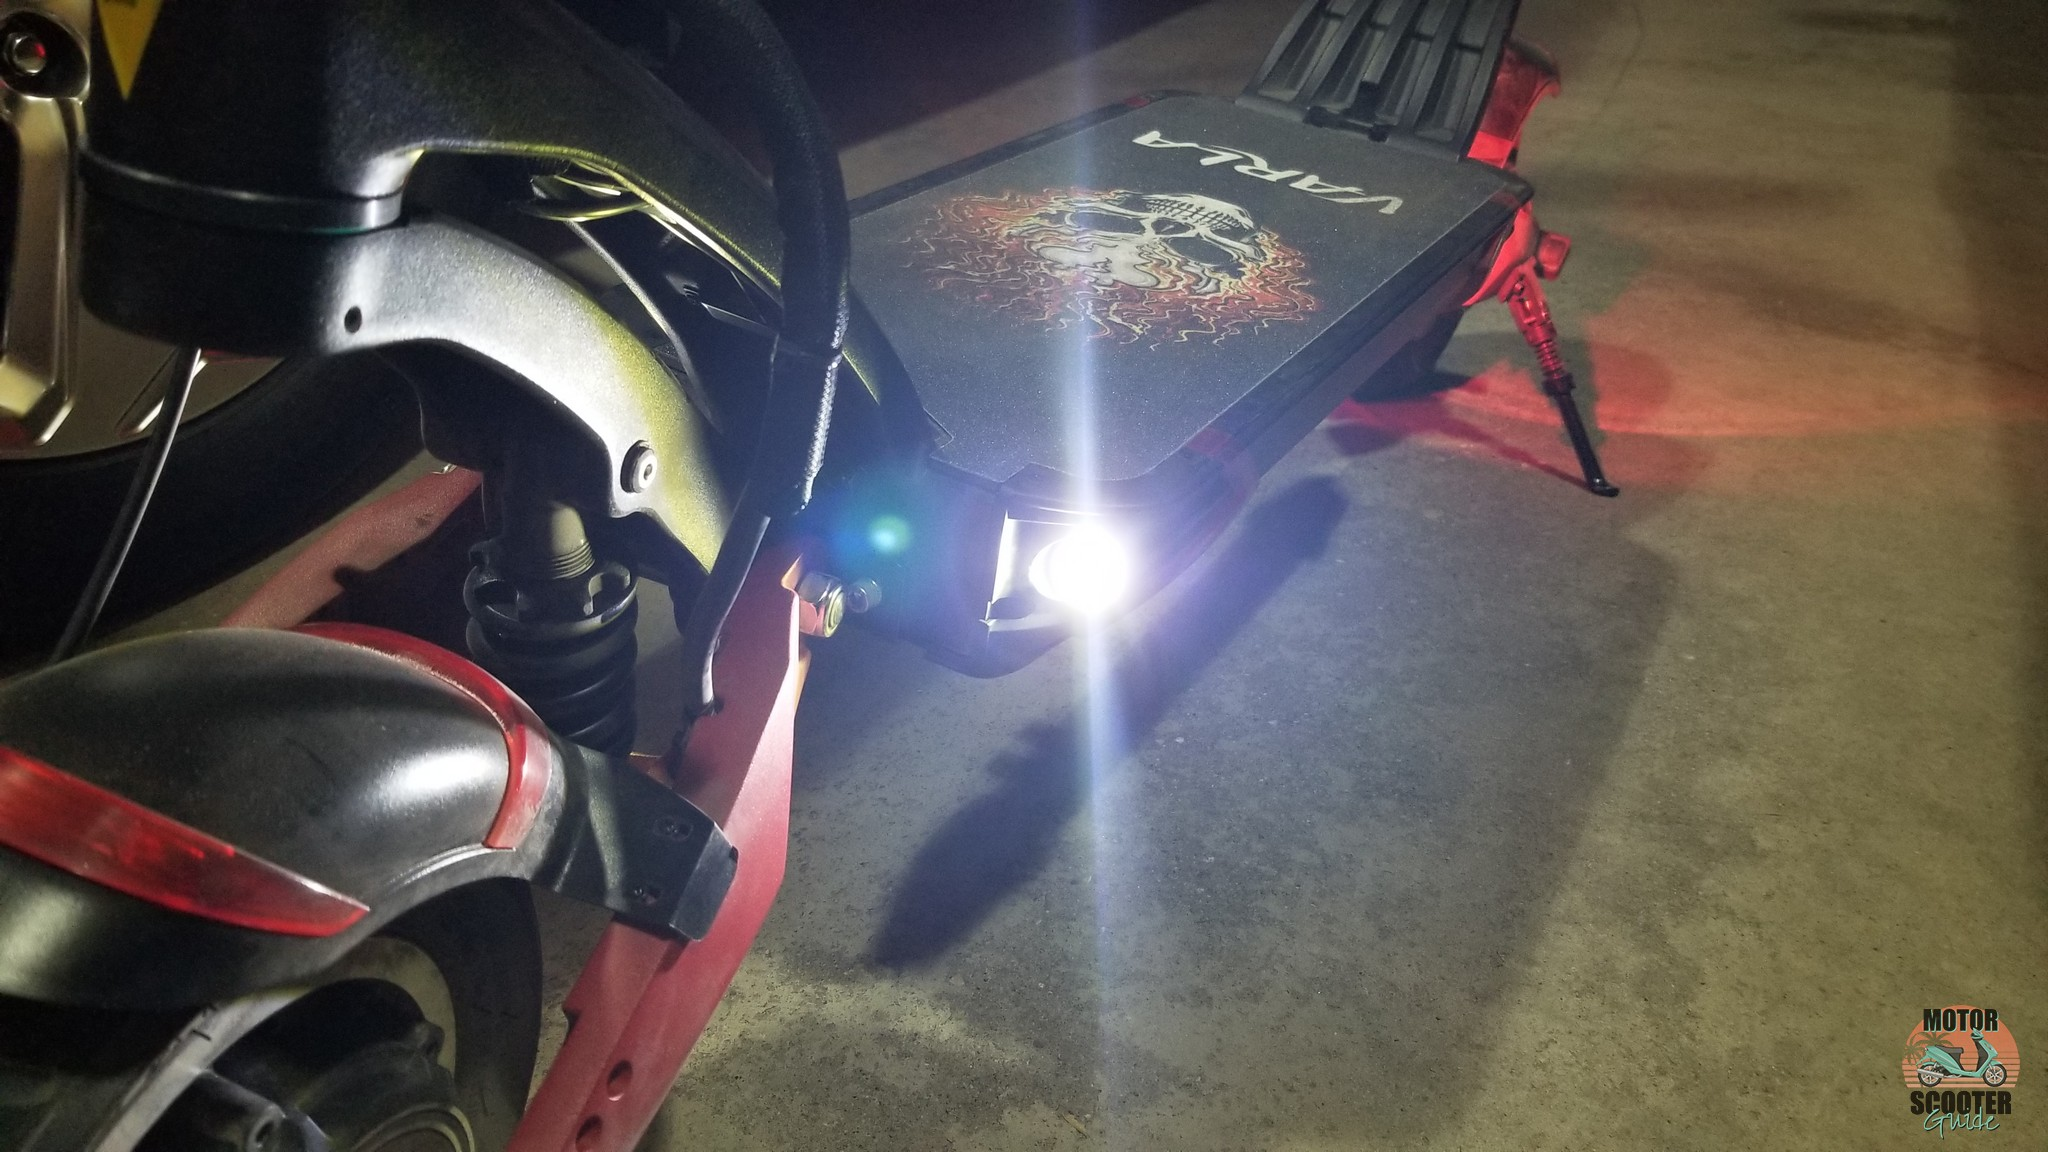 Front LED headlights on Varla scooter